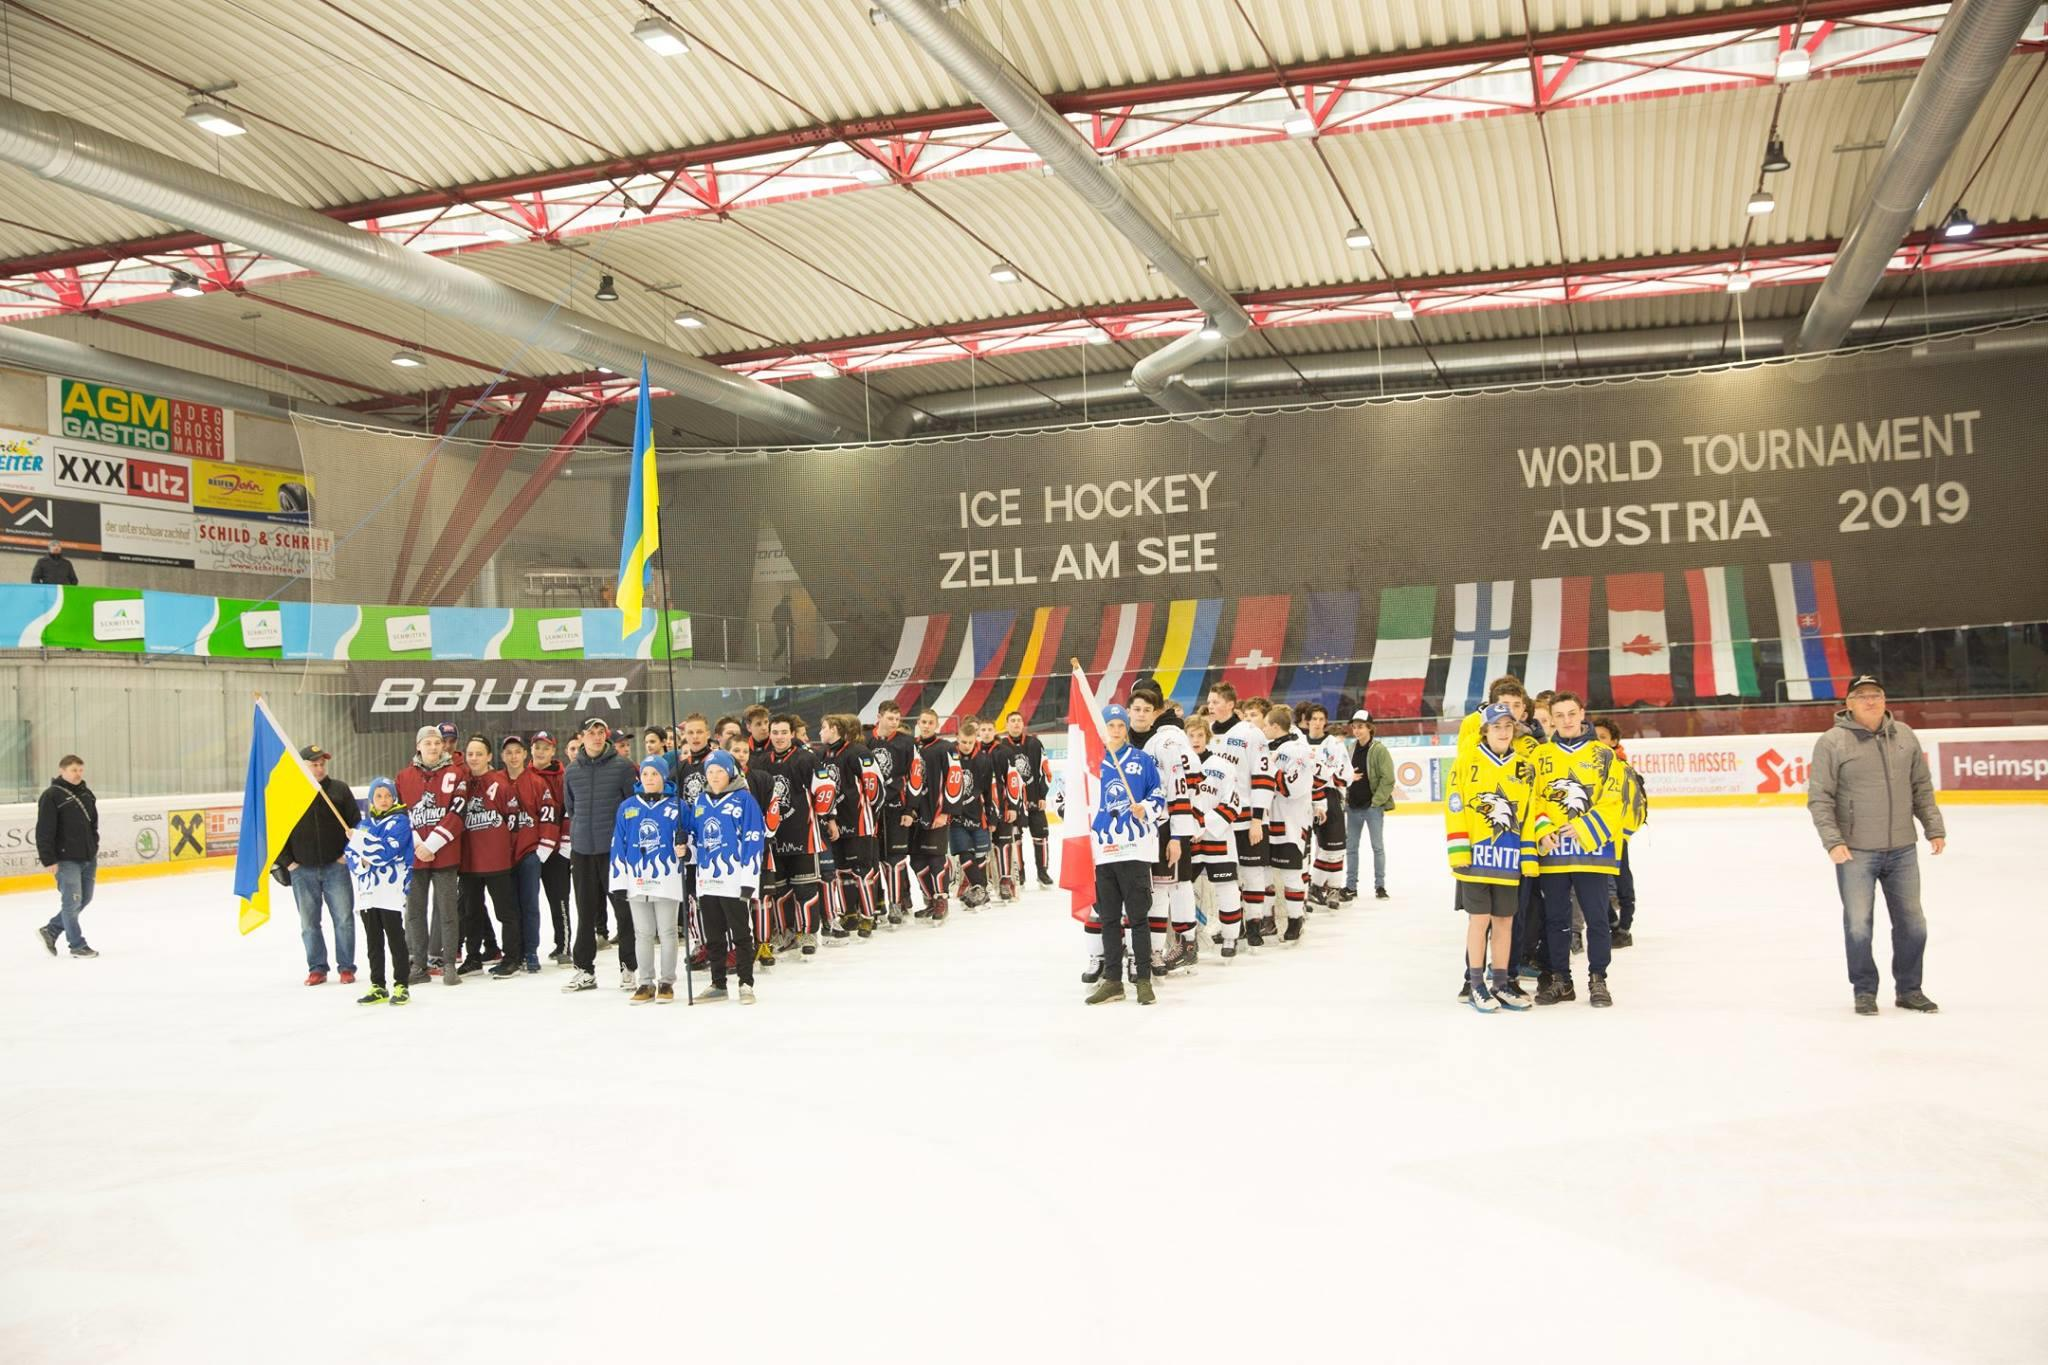 Icehockey World Tournament 2019 - 17/04/2020